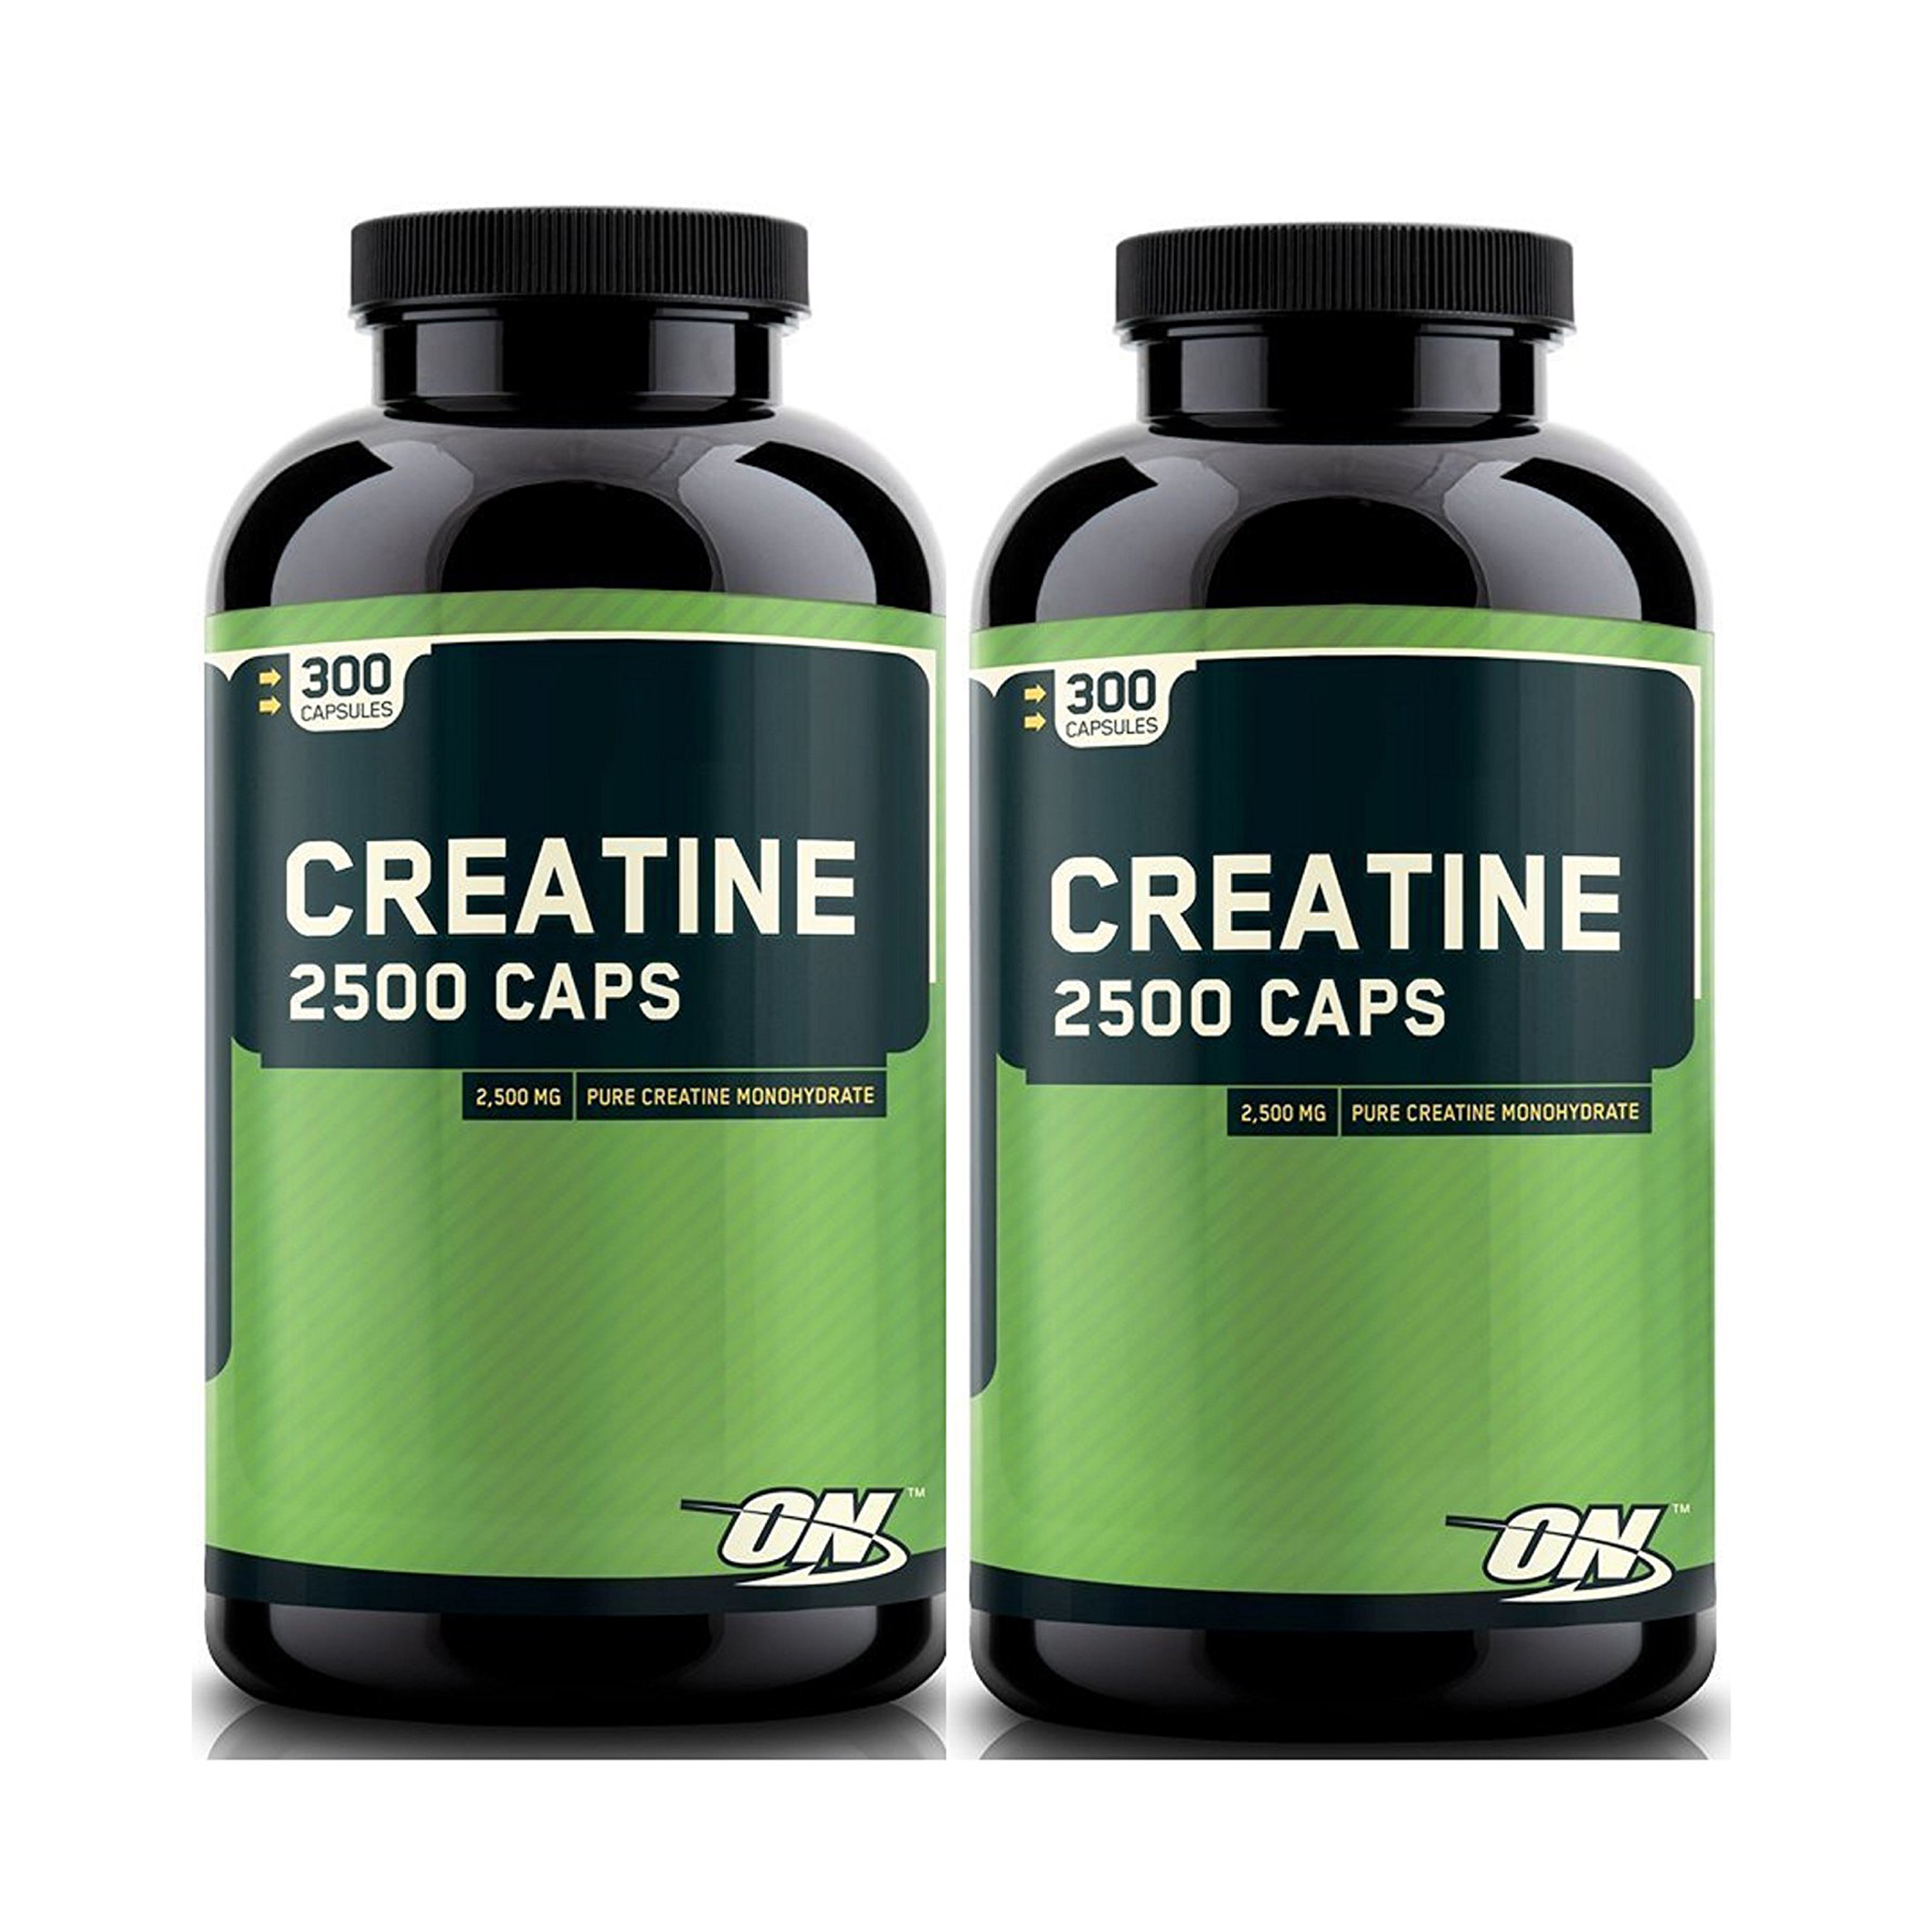 Optimum Nutrition Creatine 2500mg, 300 Capsules x 2 packs